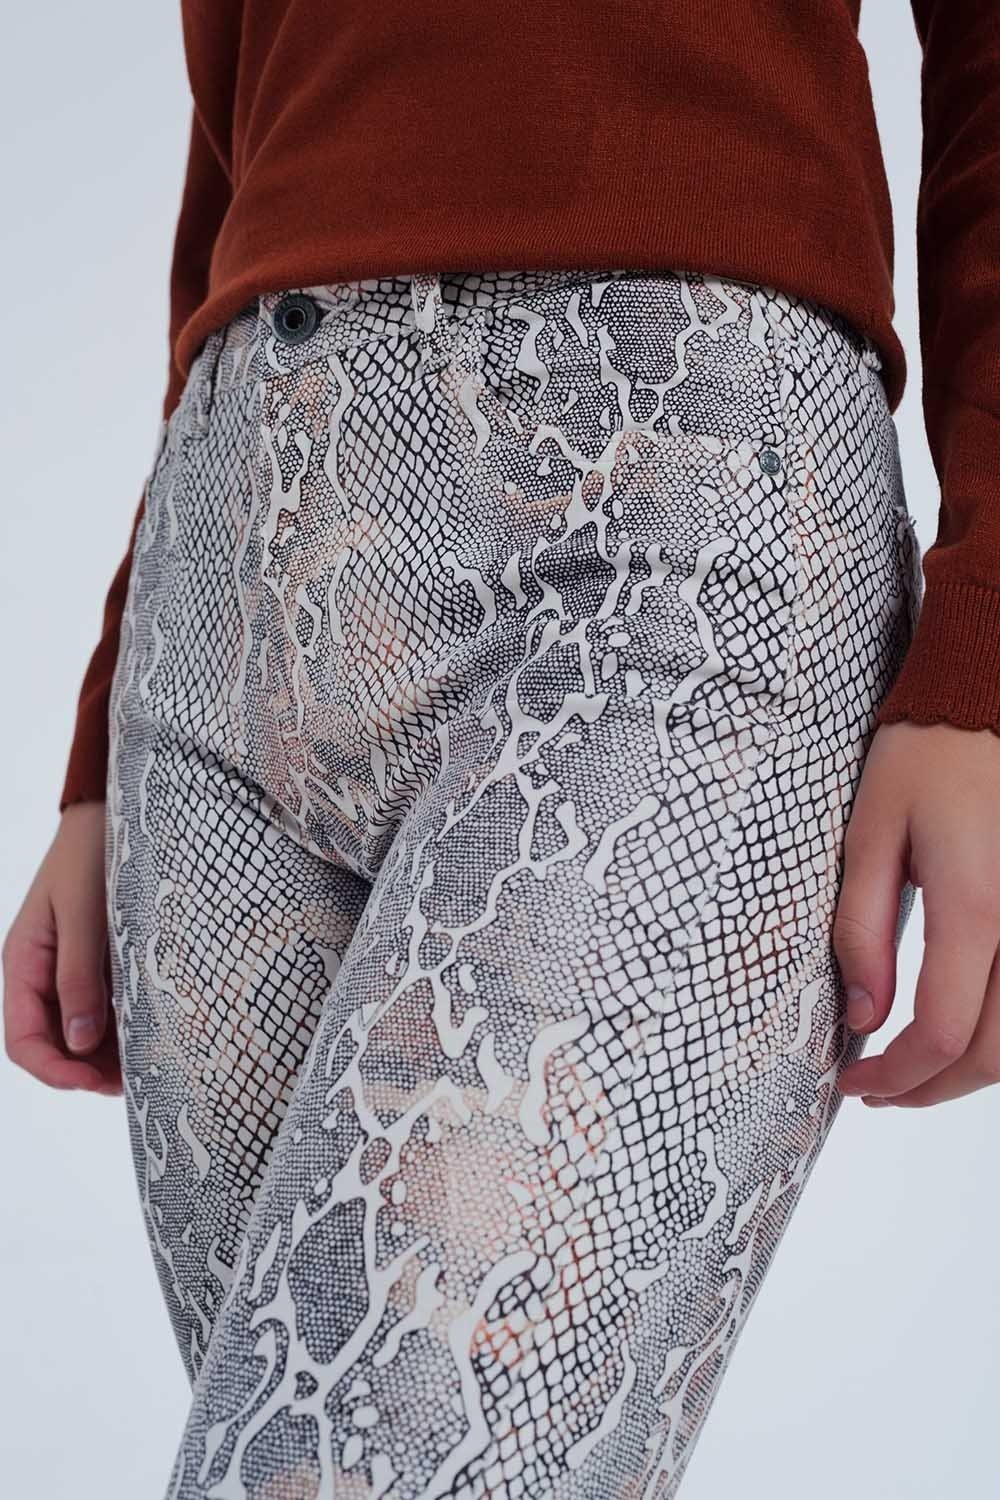 Q2 beige coloured pants with snake print